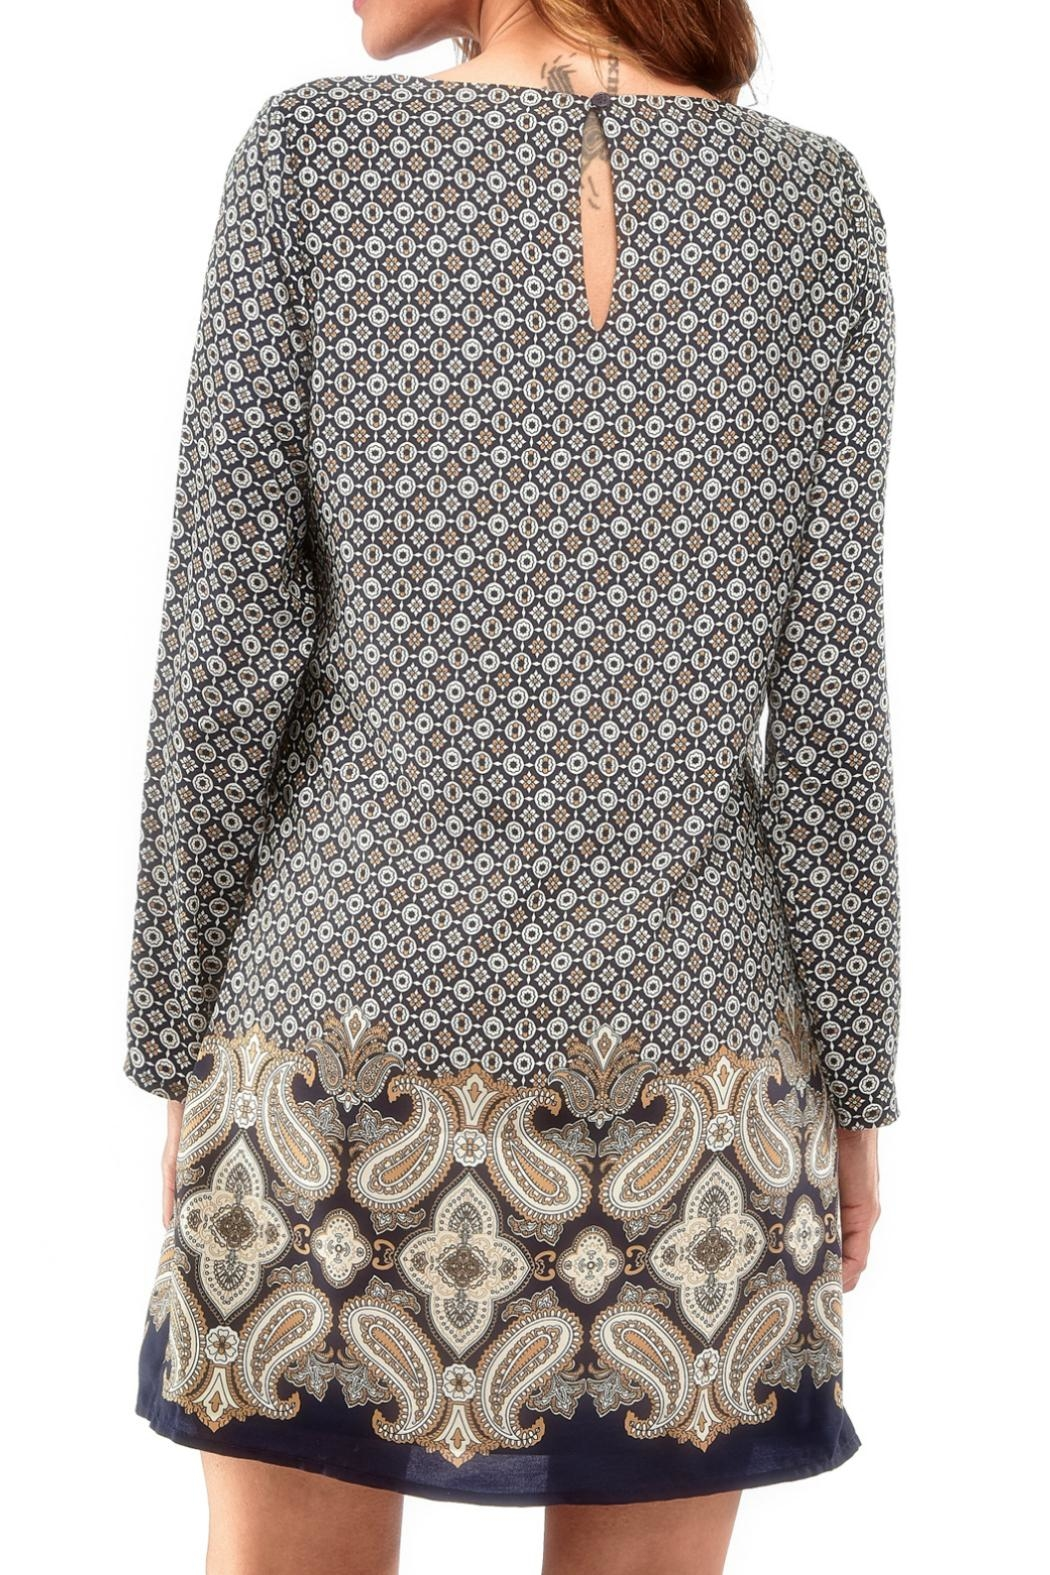 Charlie Paige Paisley Tunic Dress - Front Full Image